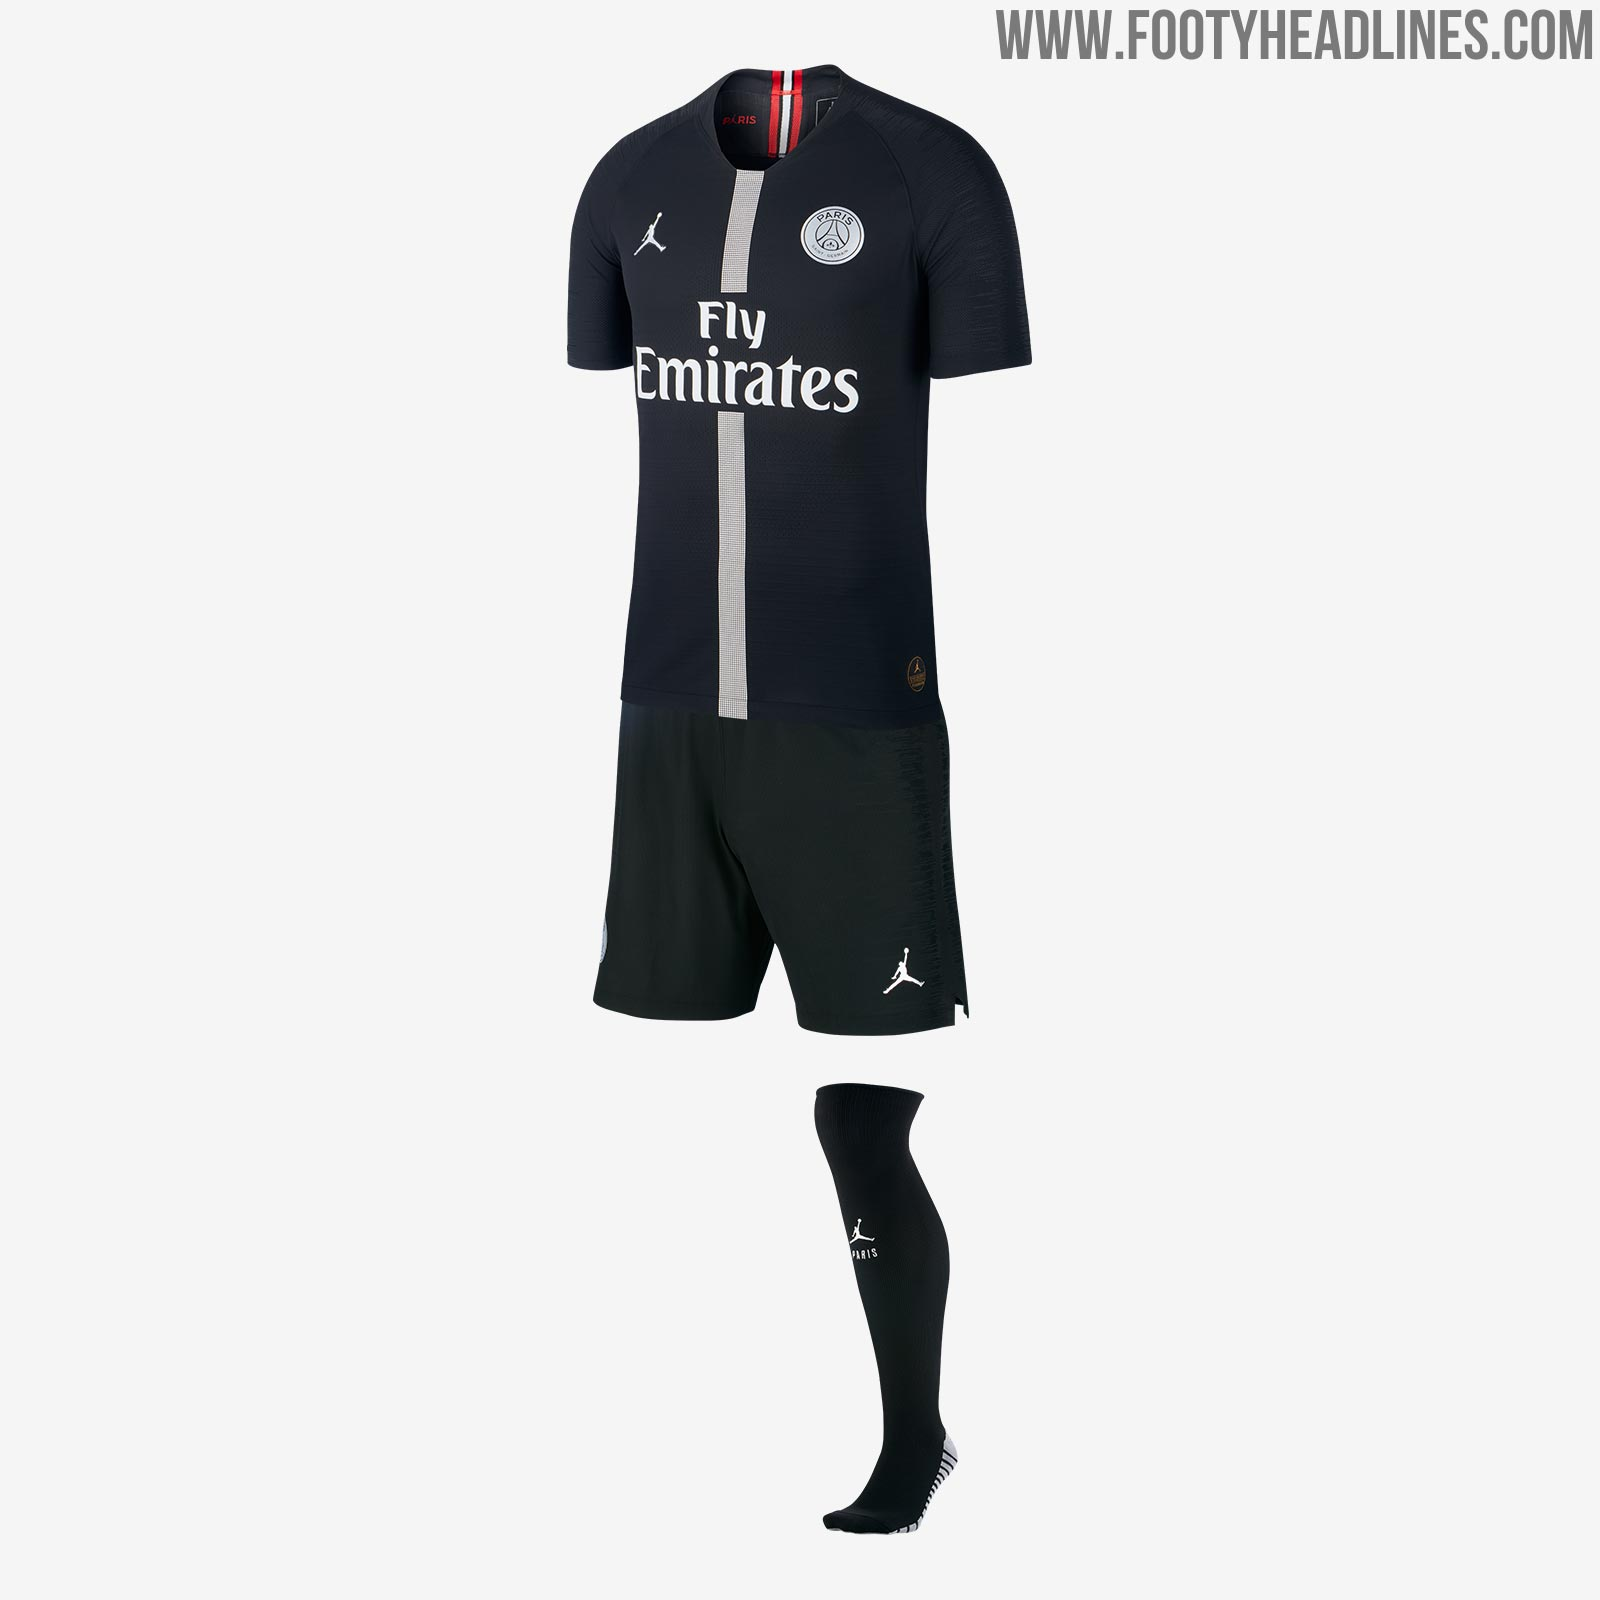 4e98b751652 A special jock tag logo can be seen on the bottom left of the Jordan x PSG  shirt